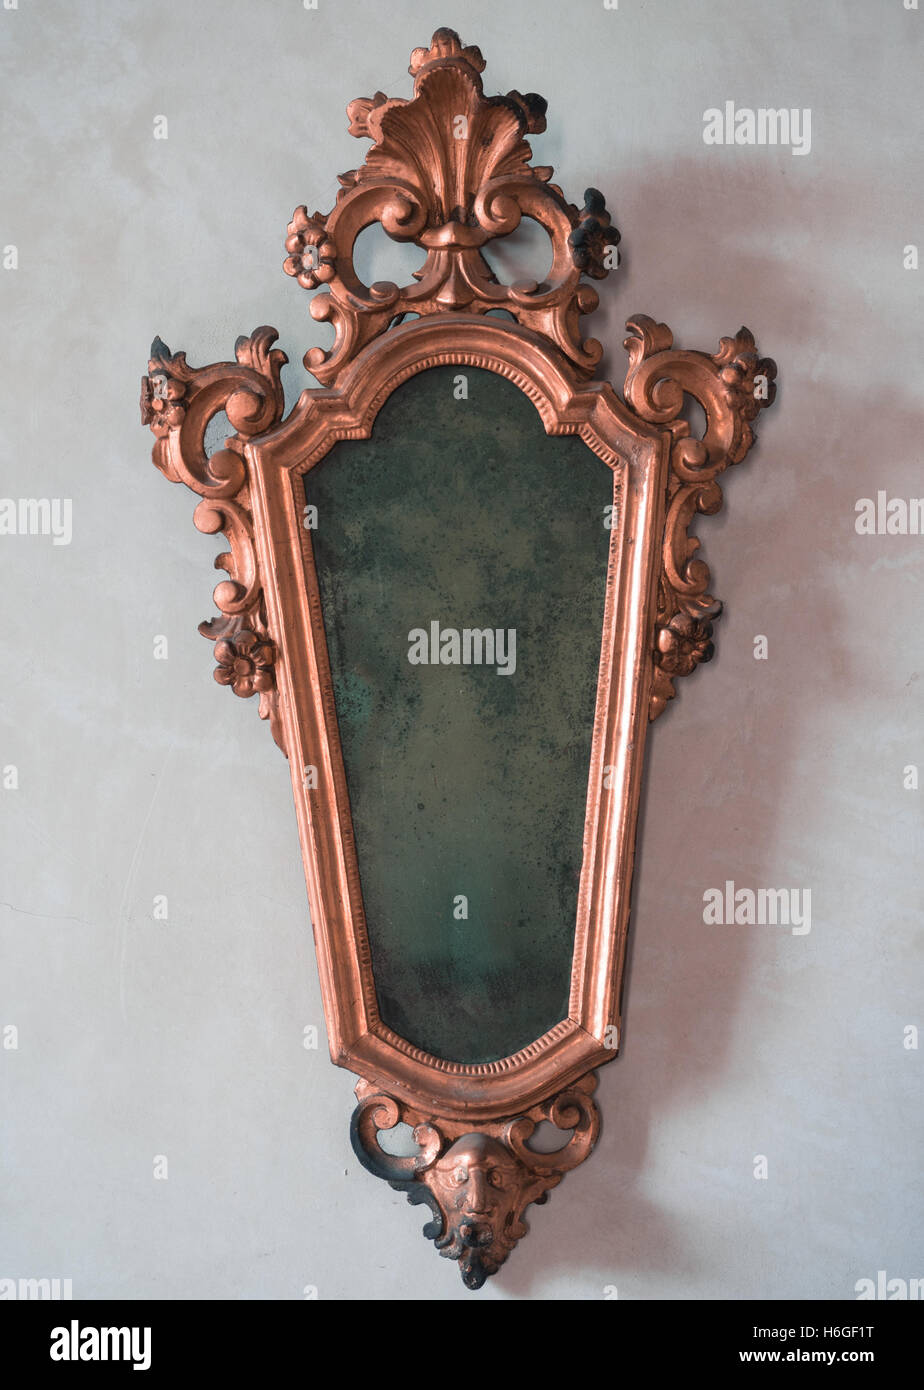 Classic Antique Mirror With Copper Colored Frame Engraved Stock